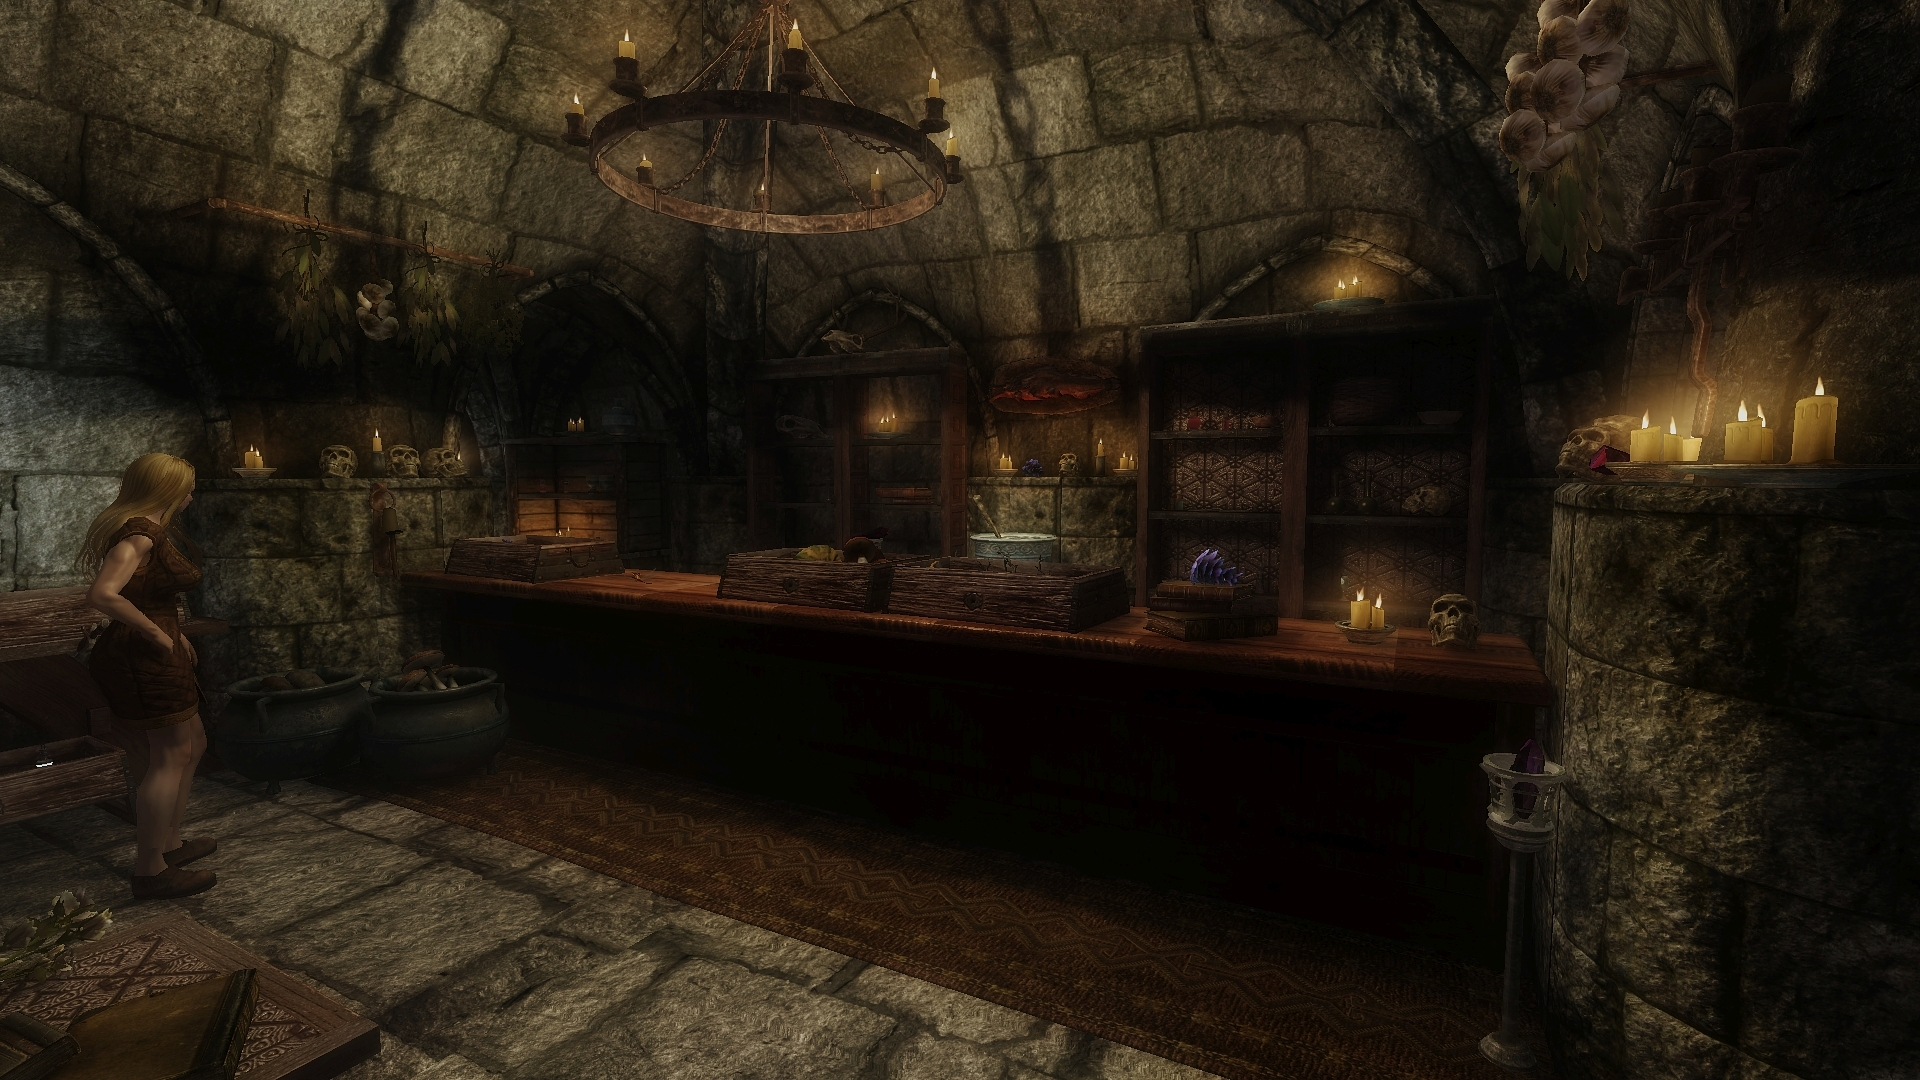 Papyrus sttings    - Skyrim Technical Support - LoversLab